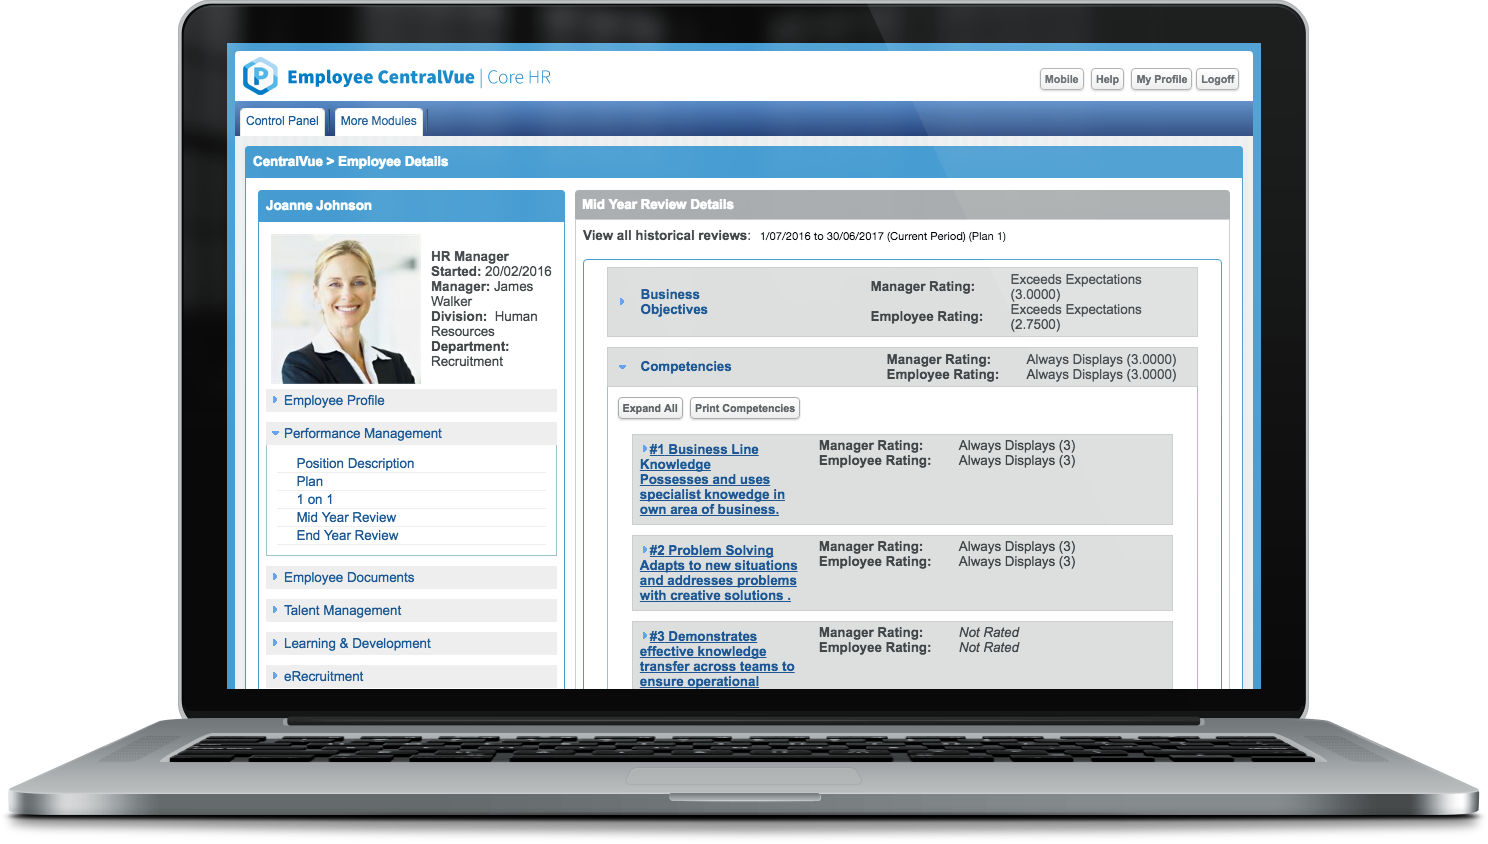 Employee CentralVue Core HR Software